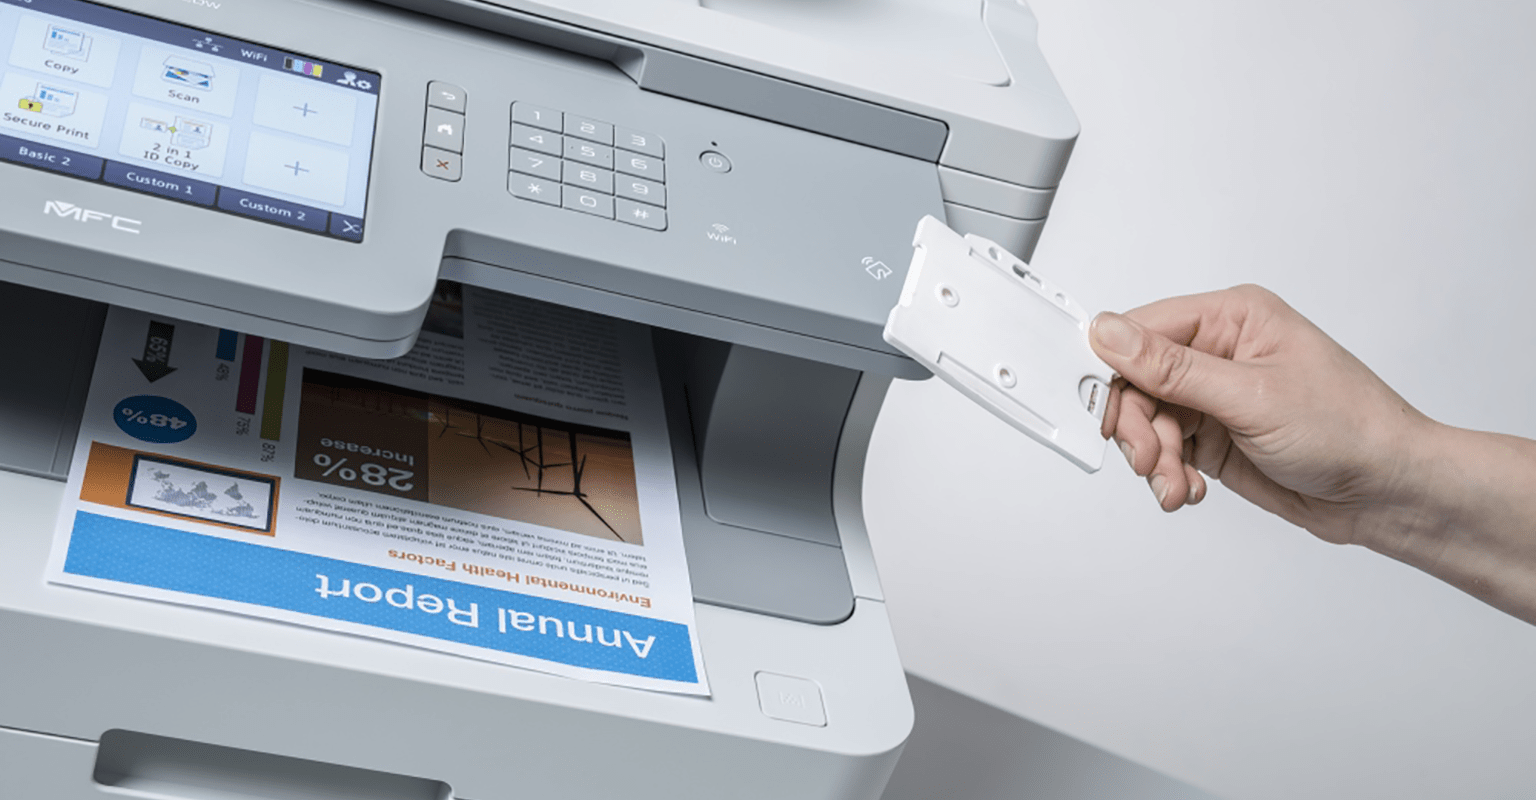 Person using card to access Brother printer